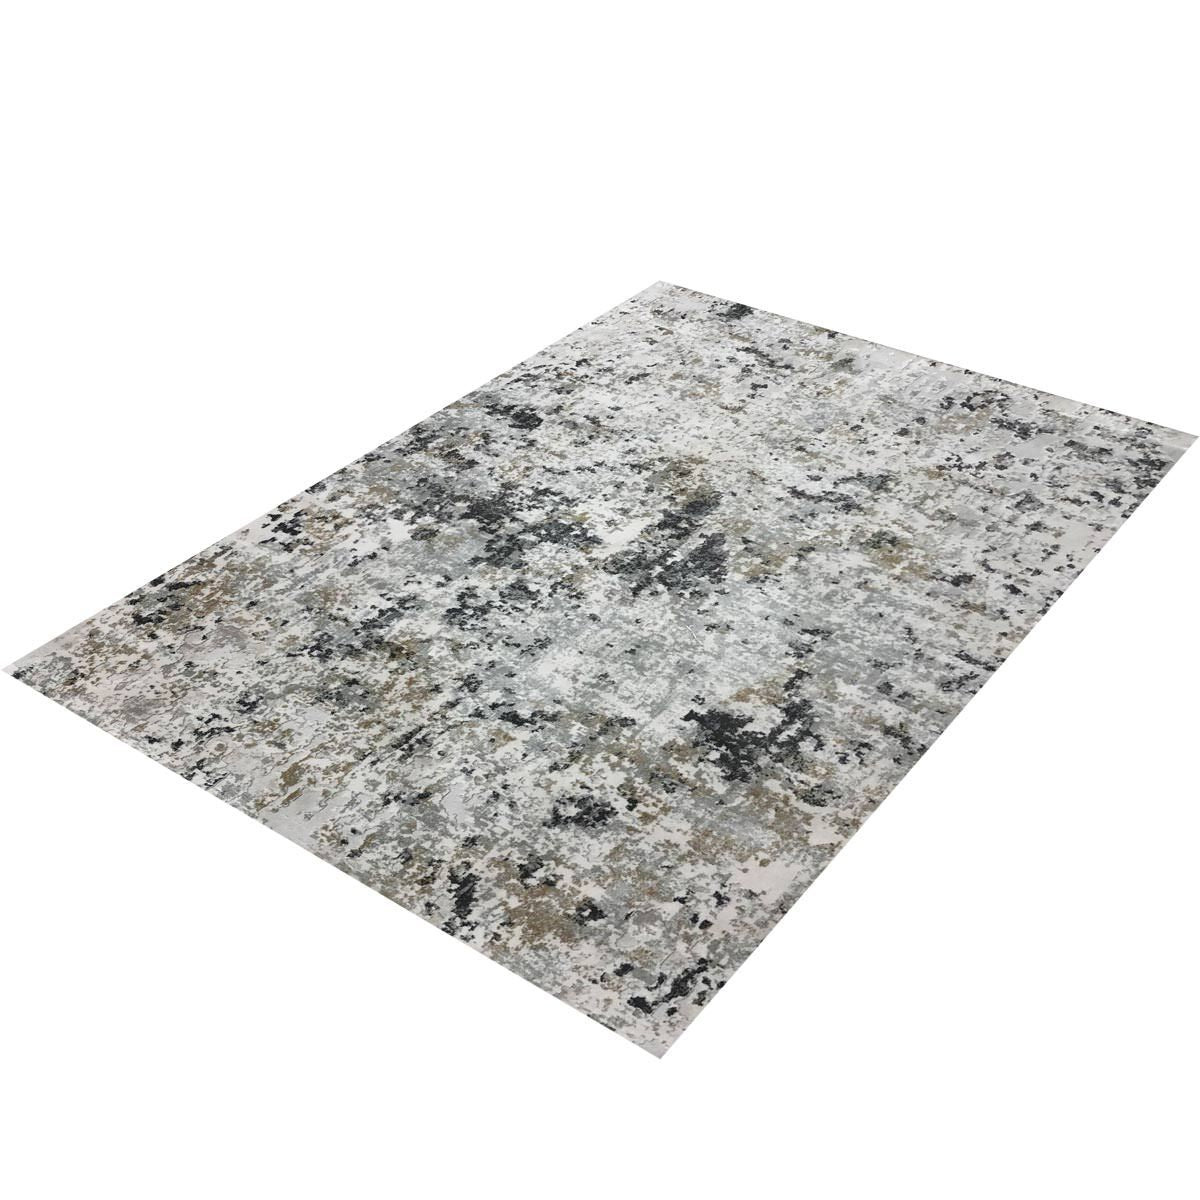 Madrid Rug 07 Grey/Beige 3